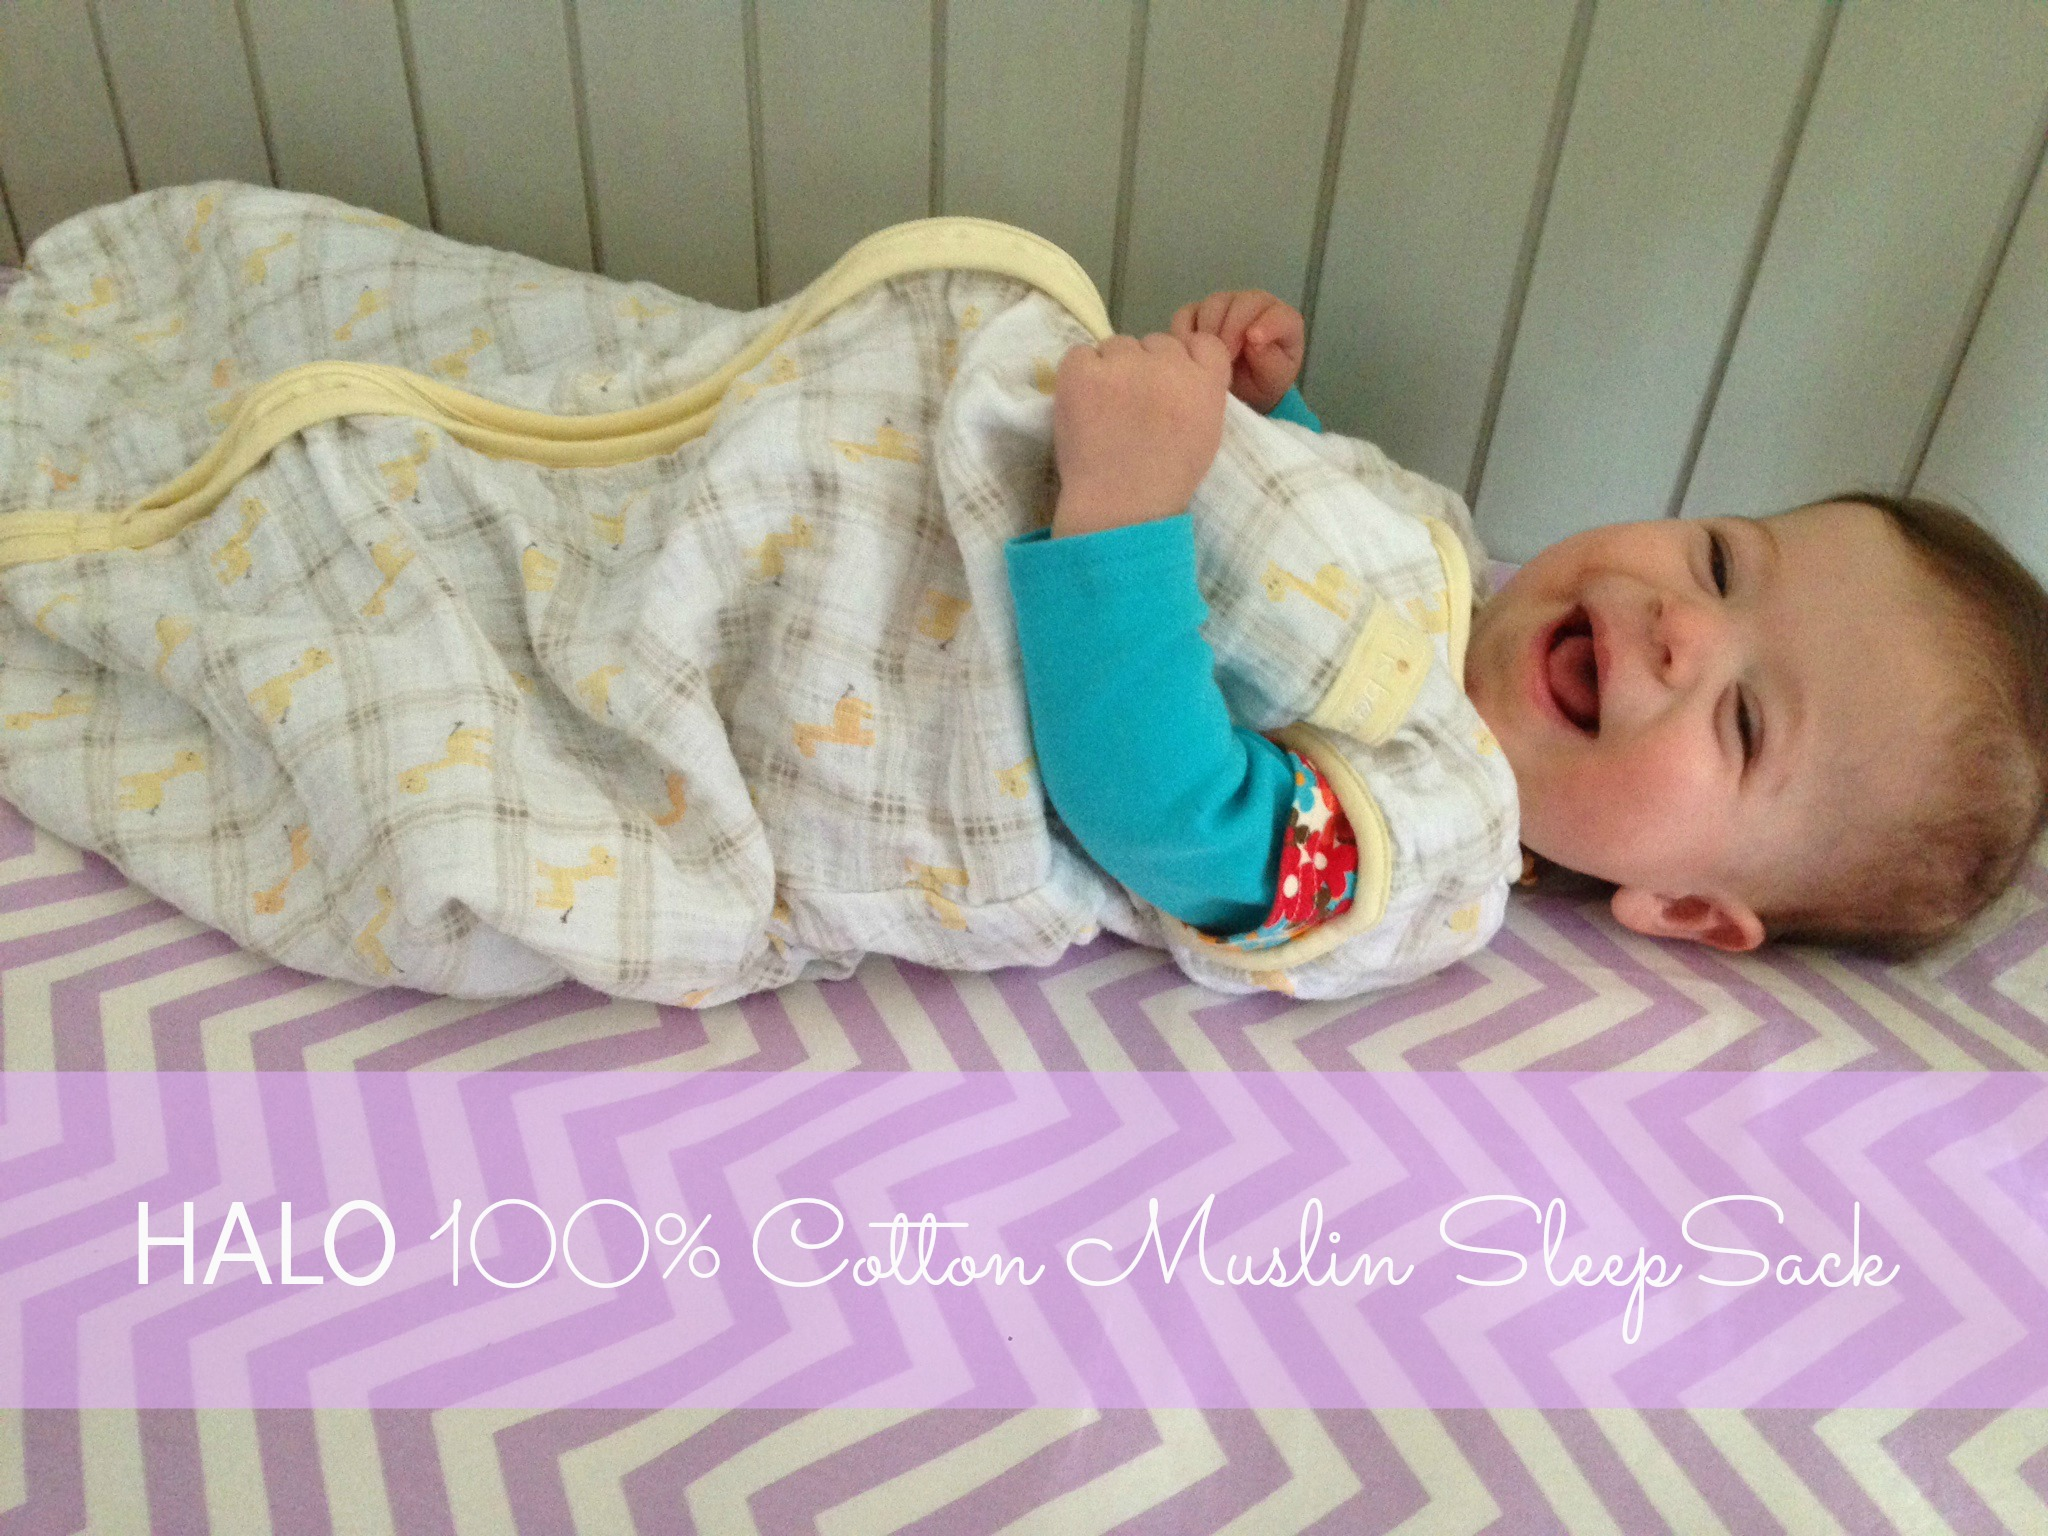 HALO SleepSacks Now Available in Cotton Muslin